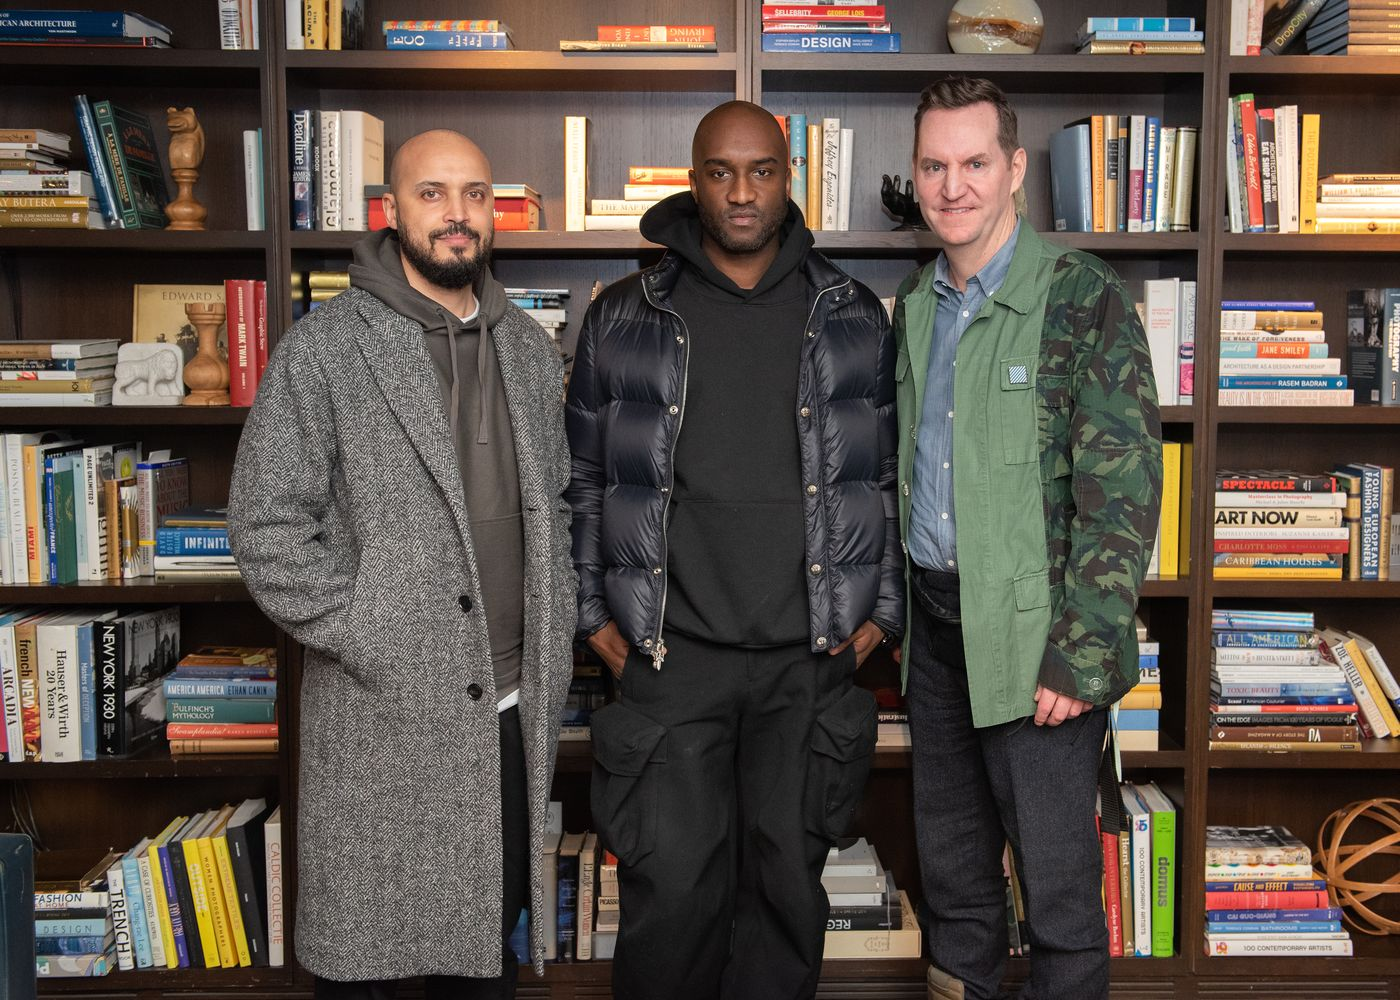 """Now on view at MCA Chicago, Virgil Abloh: """"Figures of Speech"""" takes a closer look at the artist and designer's multidisciplinary oeuvre. We sat down with Chief Curator Michael Darling to find out more."""